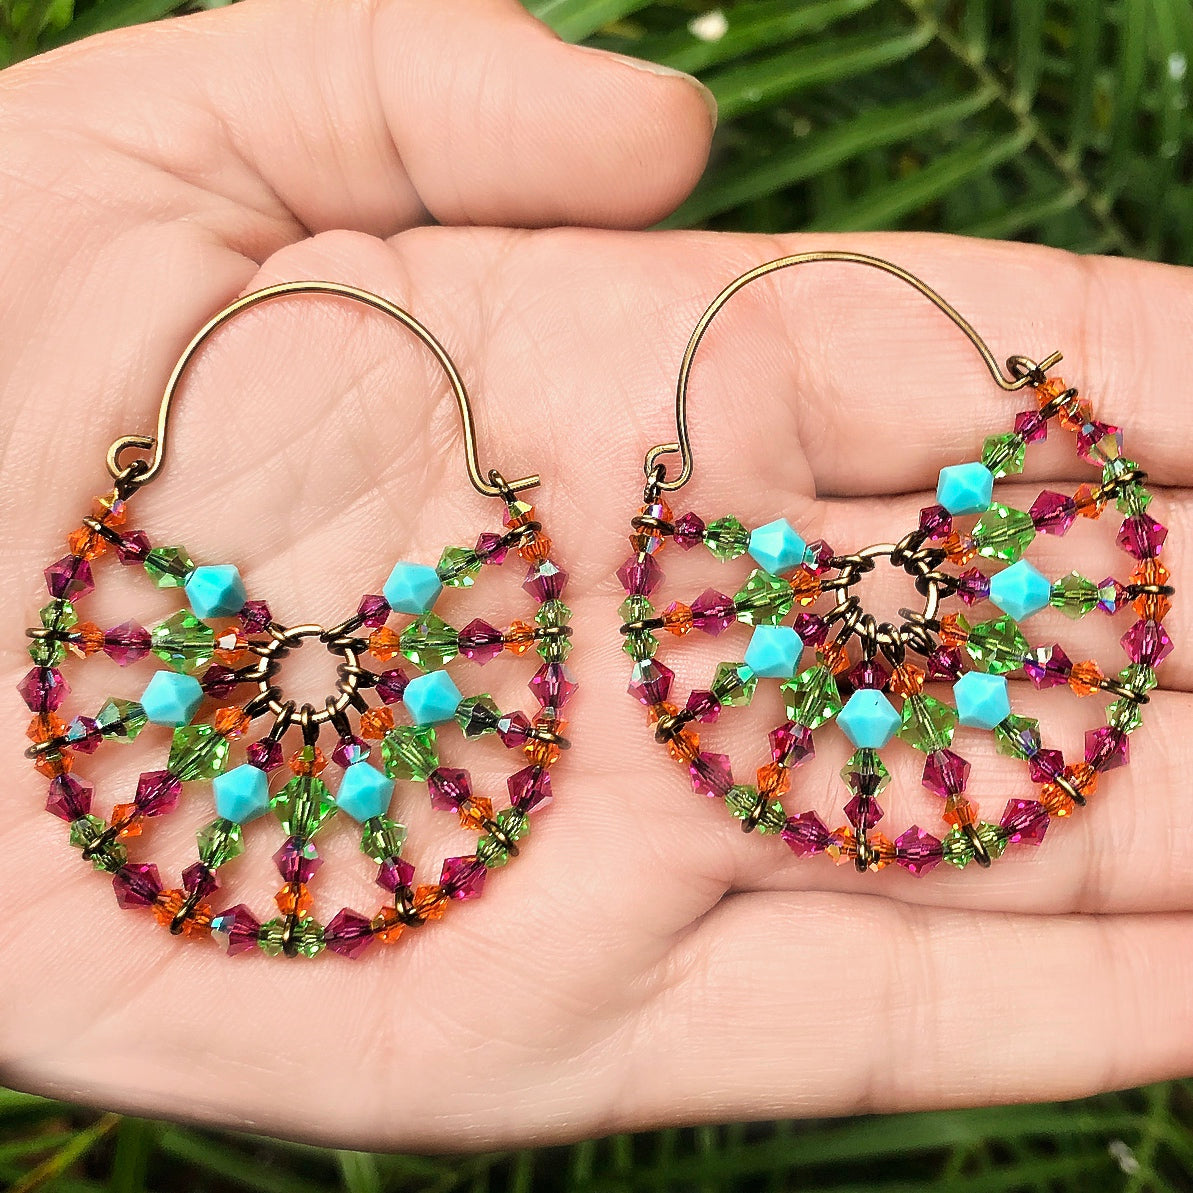 Euphoric DIY Earrings